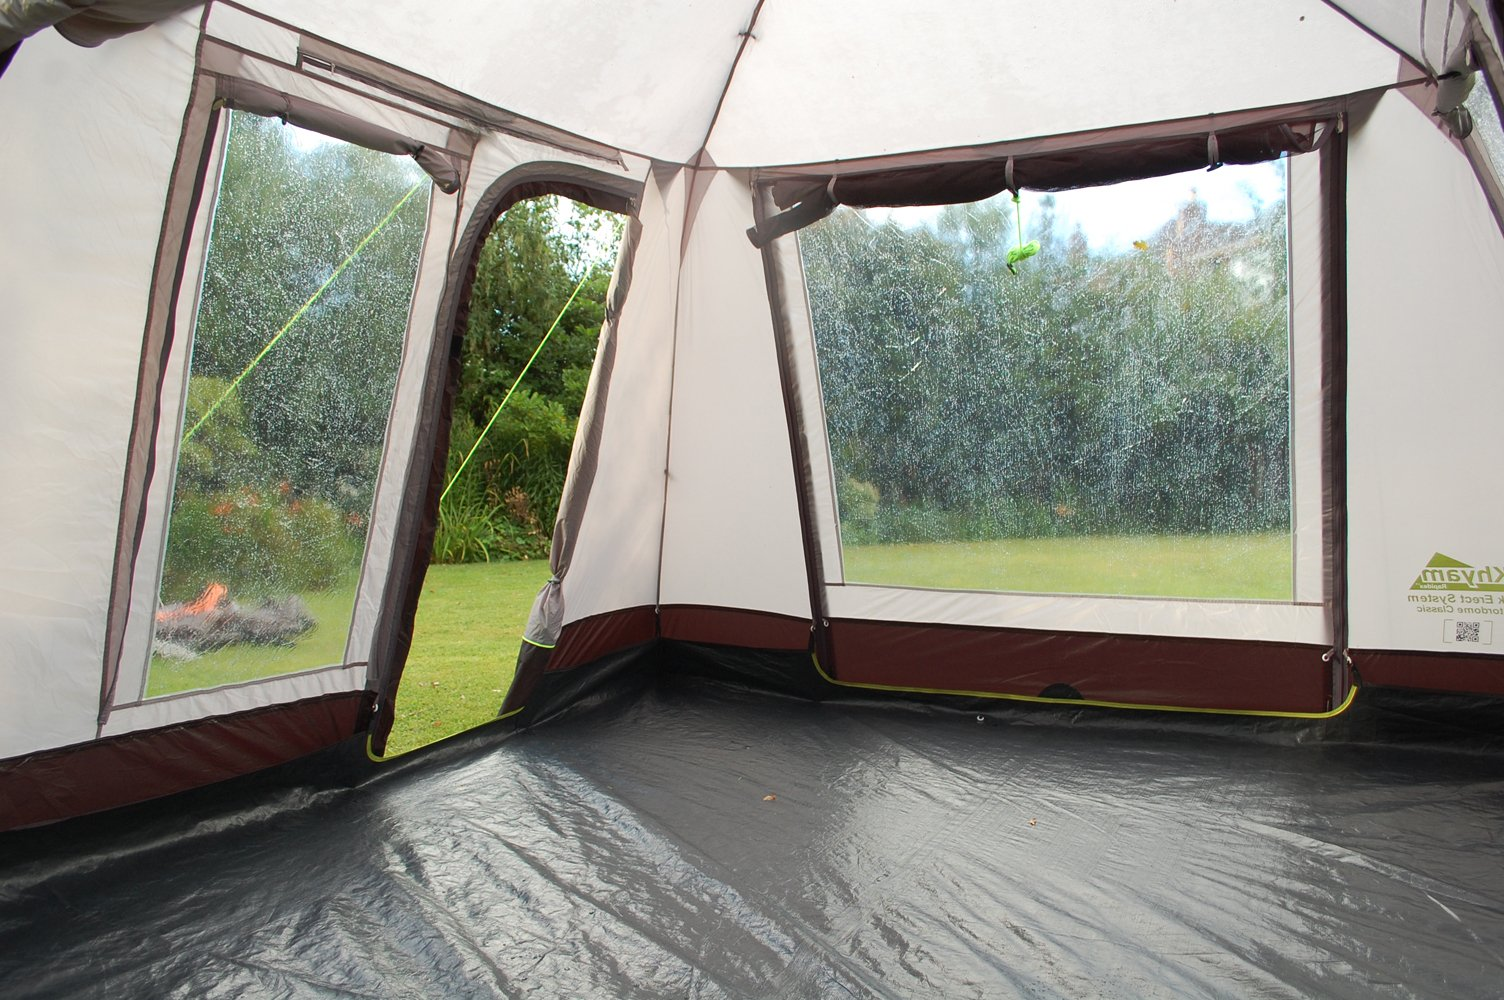 Khyam-Motordome-Sleeper-Clip-In-Groundsheet